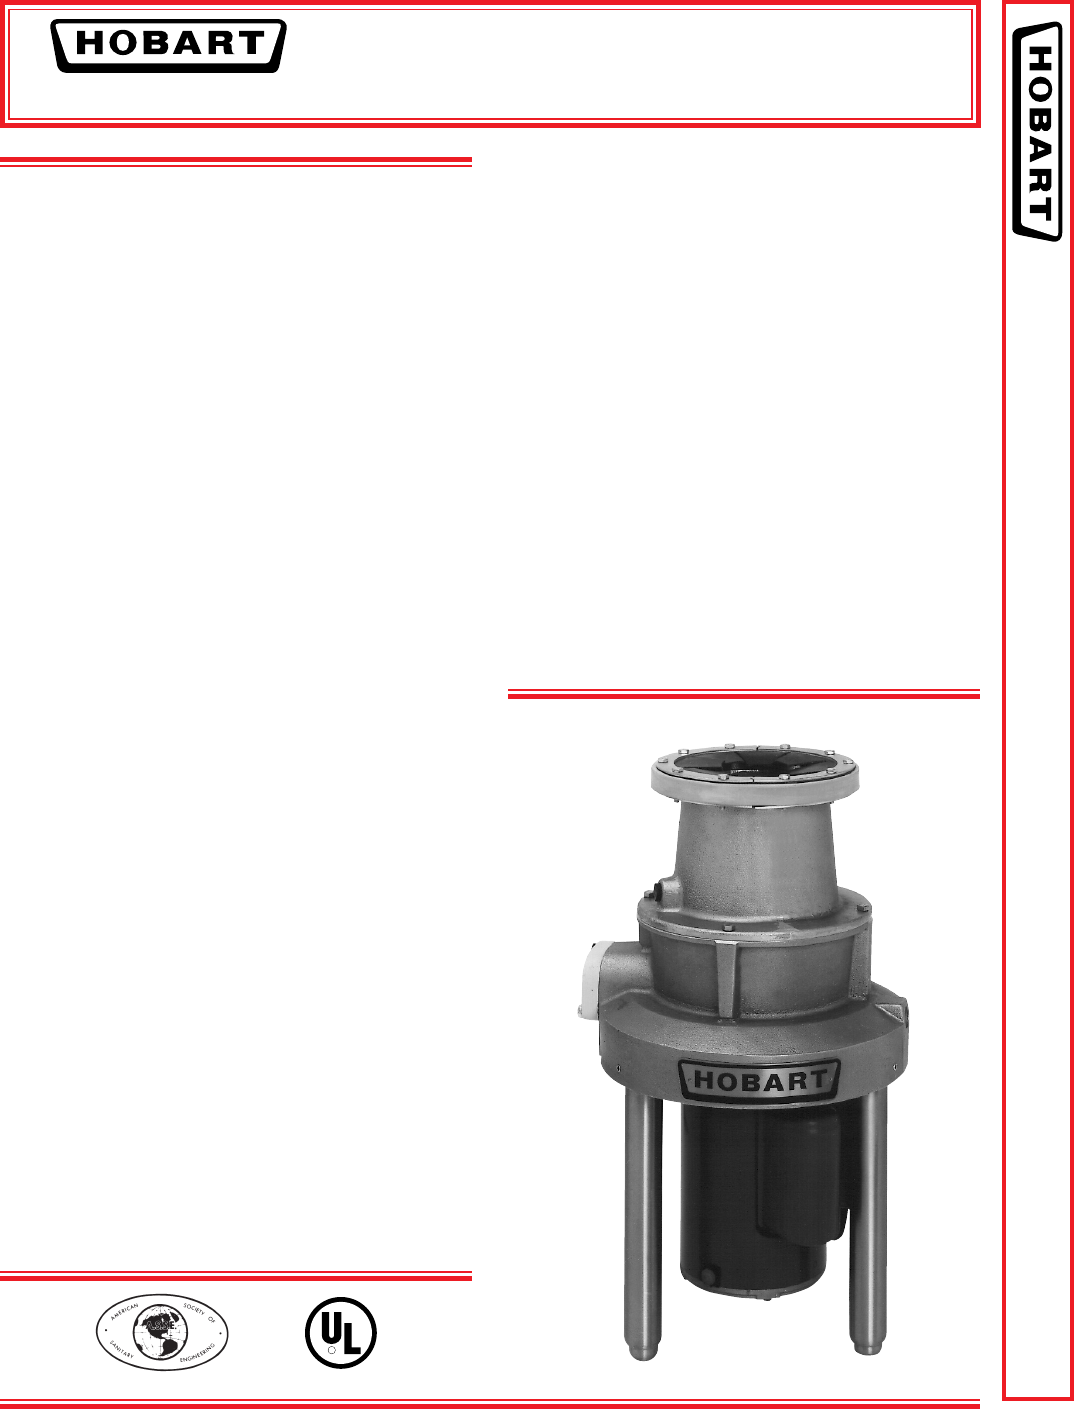 2772c22d 0e94 4b03 bb98 9f7e073e209c bg1 hobart garbage disposal fd3 150 user guide manualsonline com hobart waste disposal wiring diagram at nearapp.co